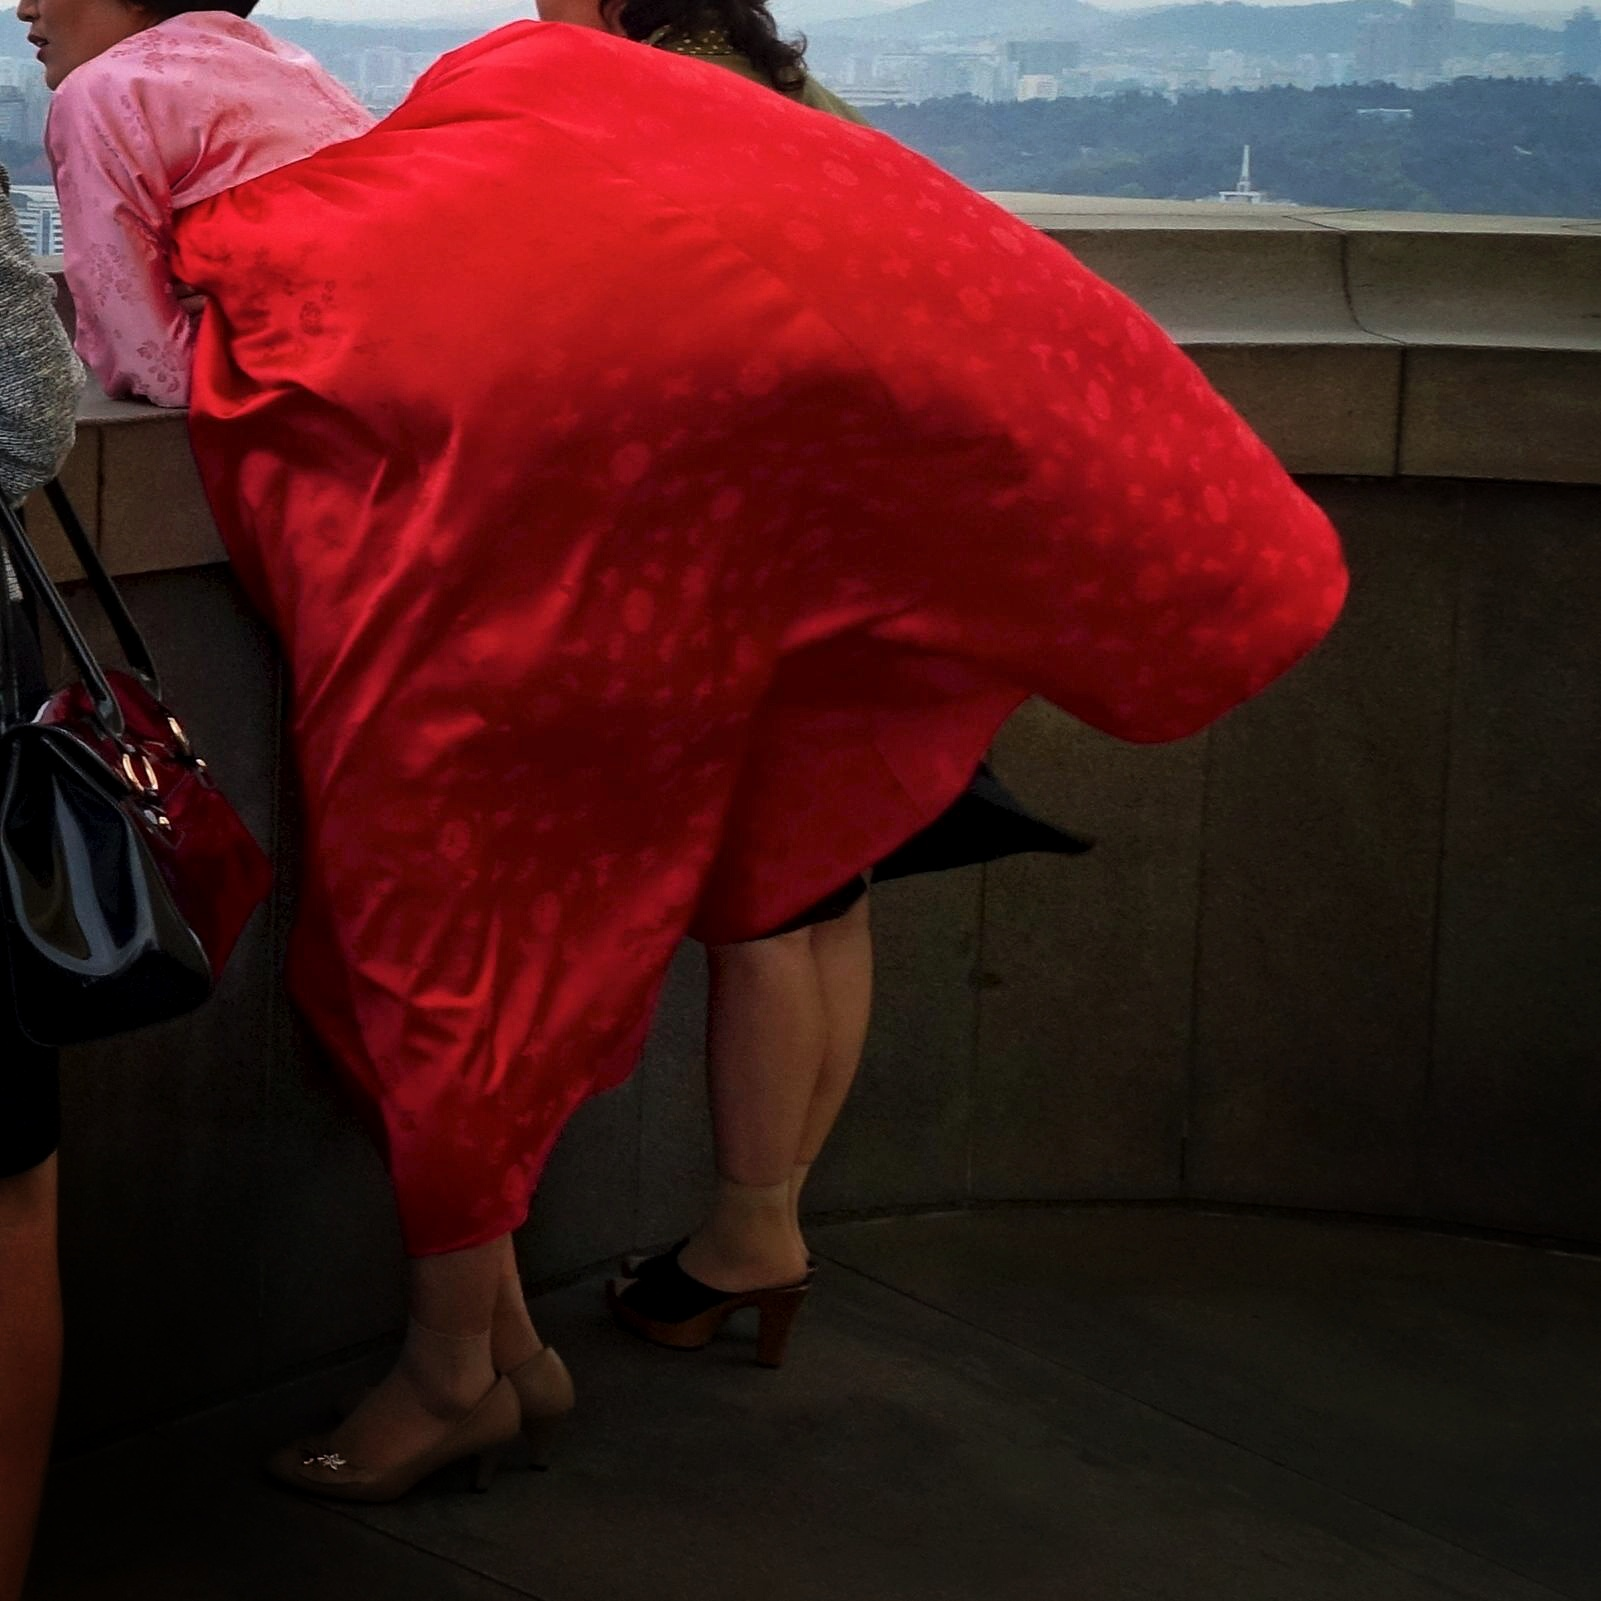 A woman's traditional dress billows in the strong breeze on top of Juche Tower in Pyongyang.